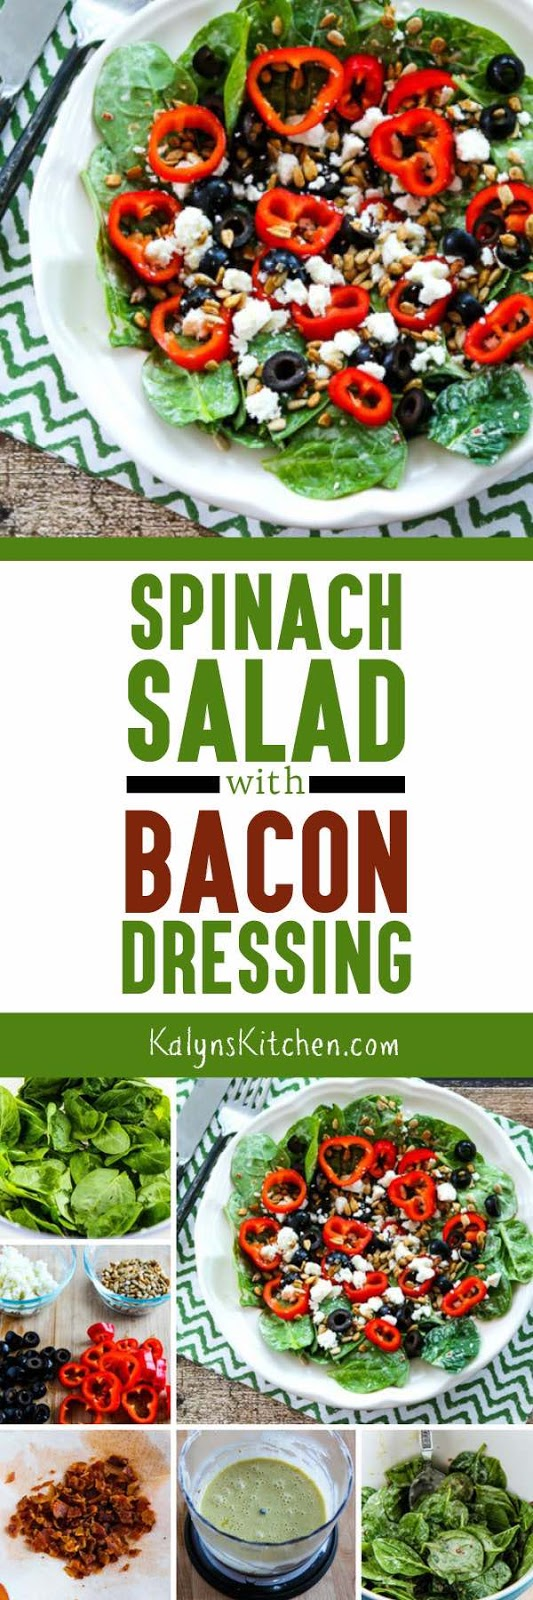 Spinach Salad with Bacon Dressing - Kalyn's Kitchen